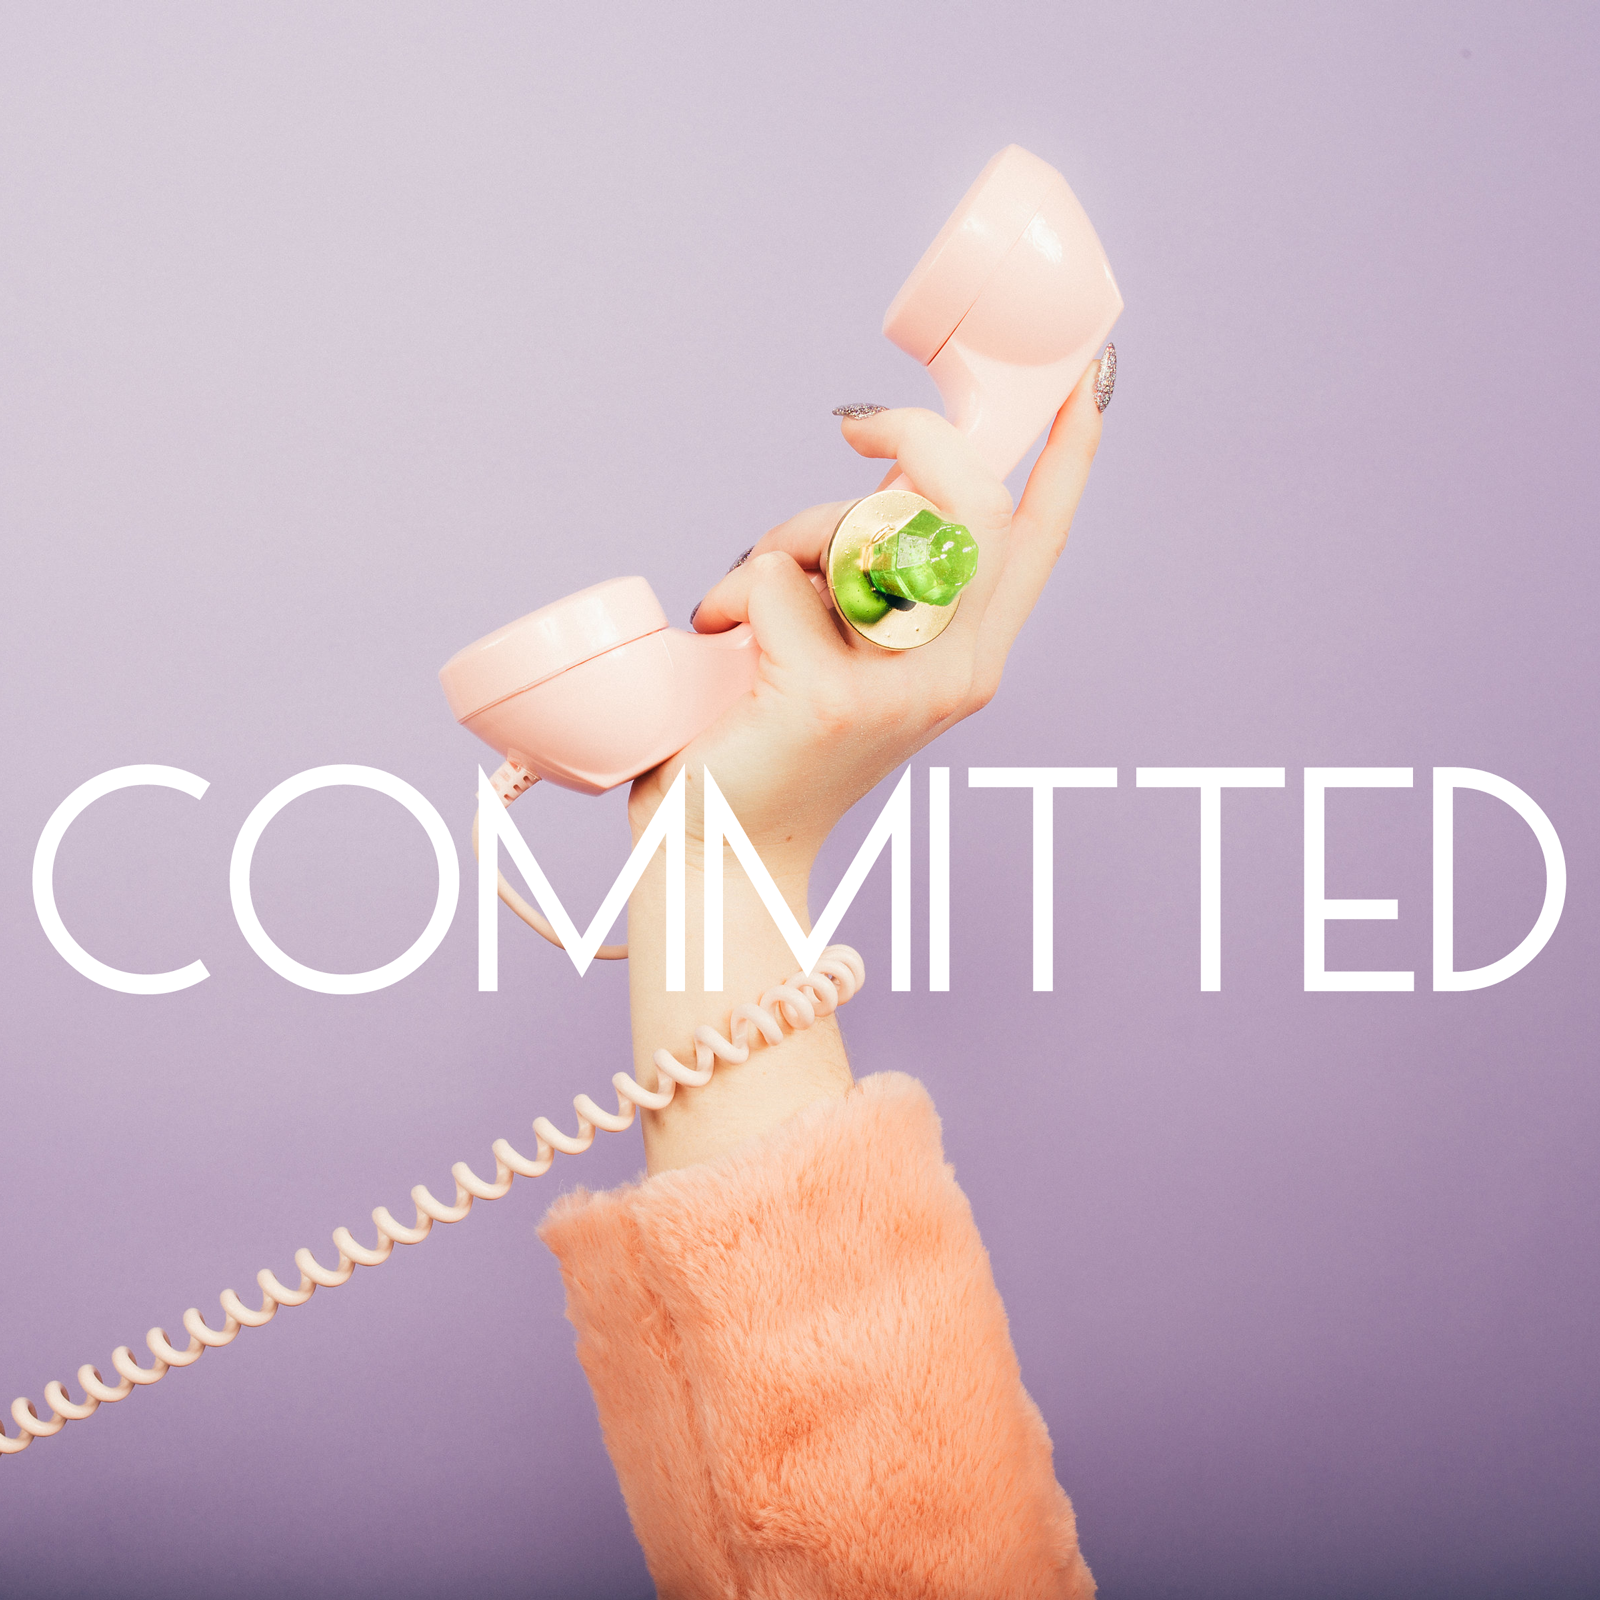 COMMITTED-SINGLE2-1600PX.png